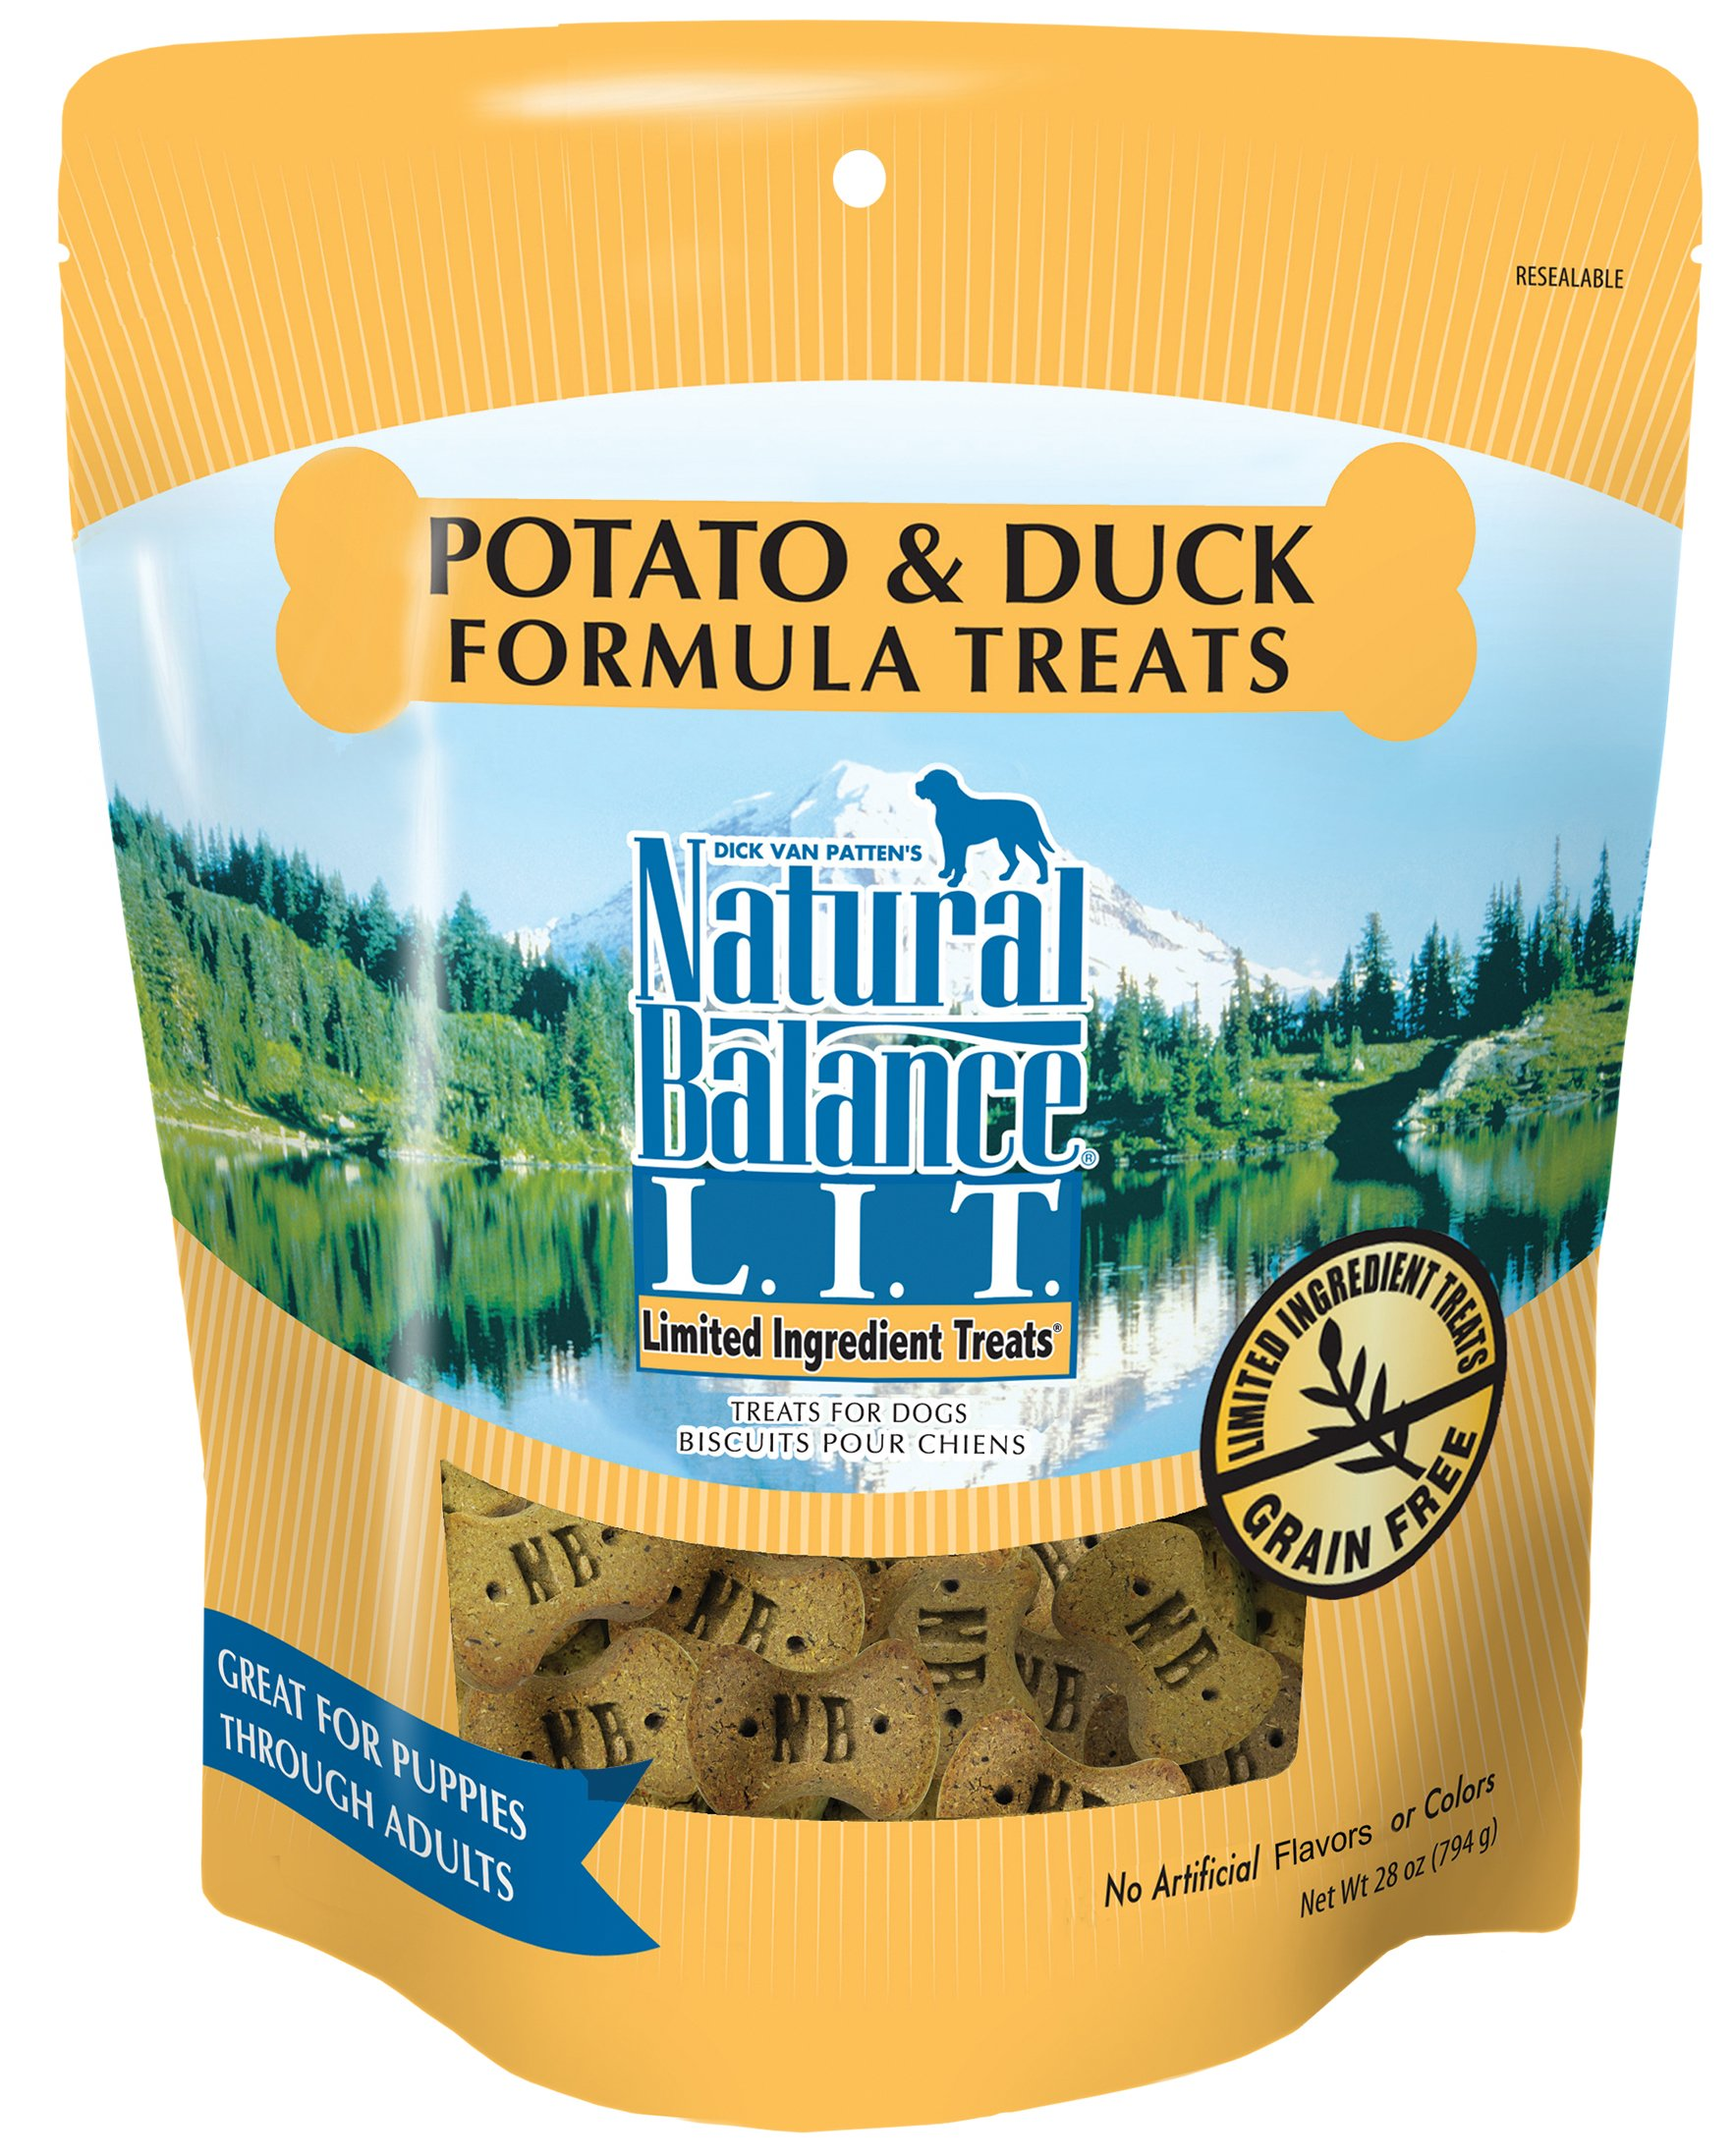 Natural Balance L.I.T. Limited Ingredient Dog Treats, Grain Free, Potato & Duck Formula, 28-Ounce